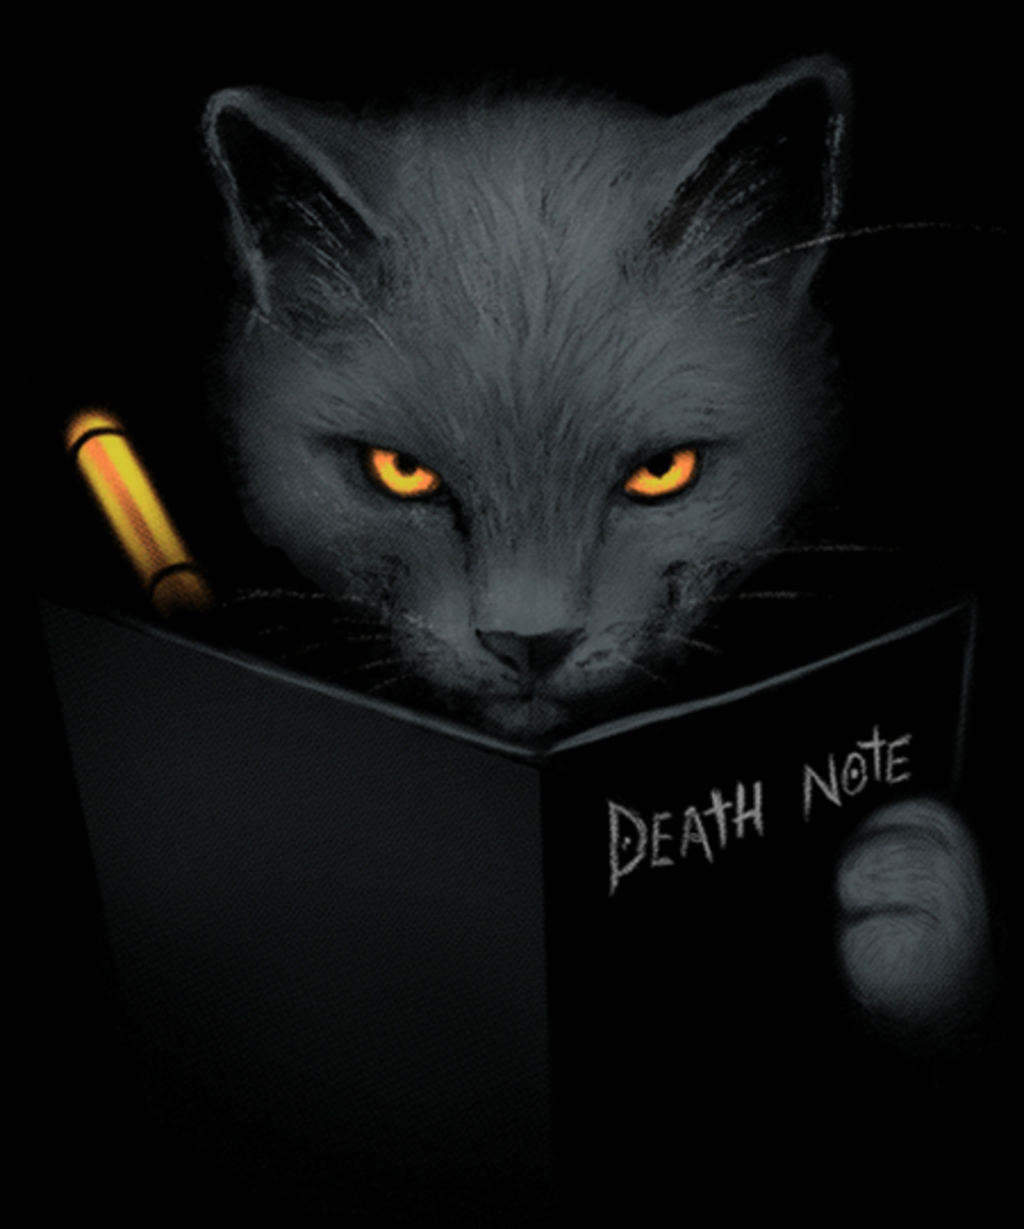 Qwertee: Shinigami cat